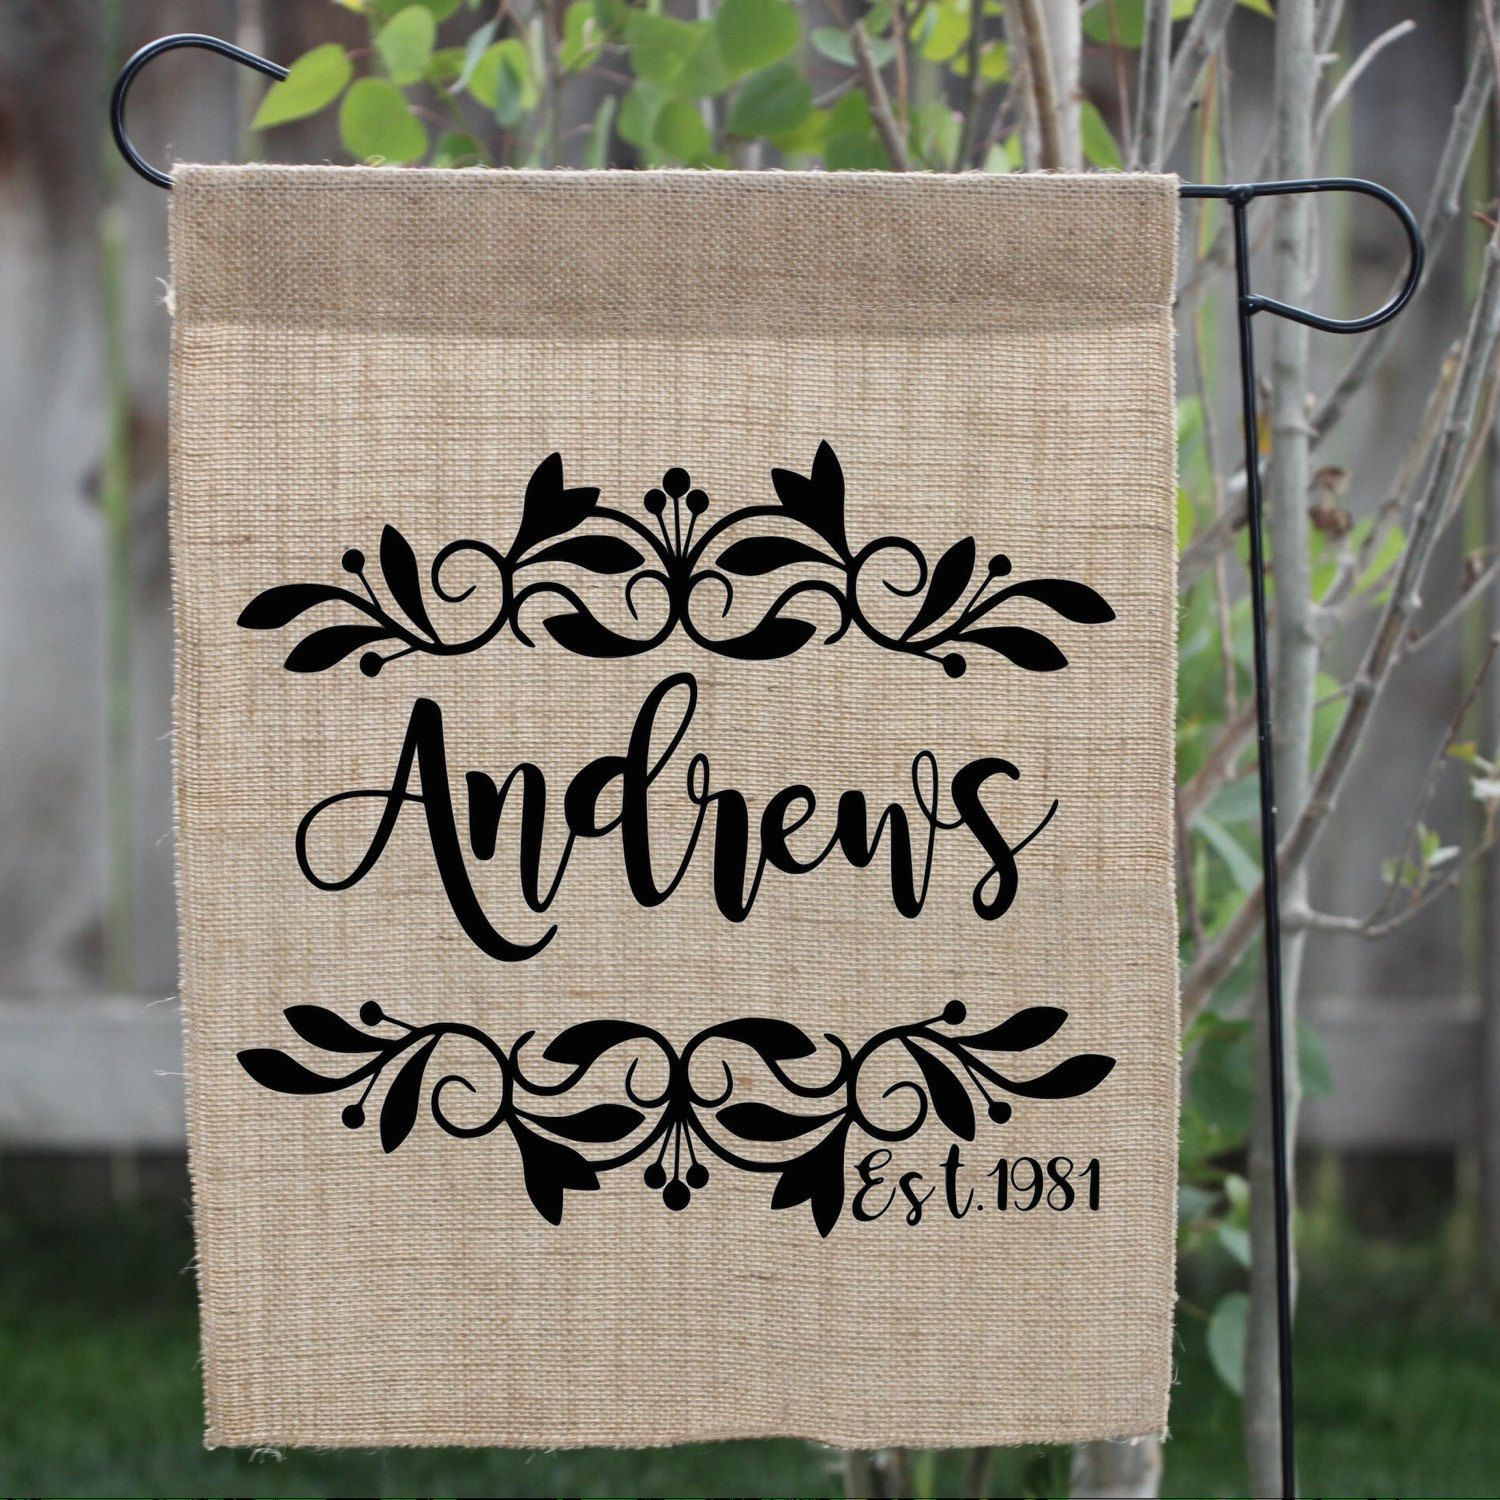 Personalized Yard Flag Perfect Gift For Anniversaries Or Newlyweds